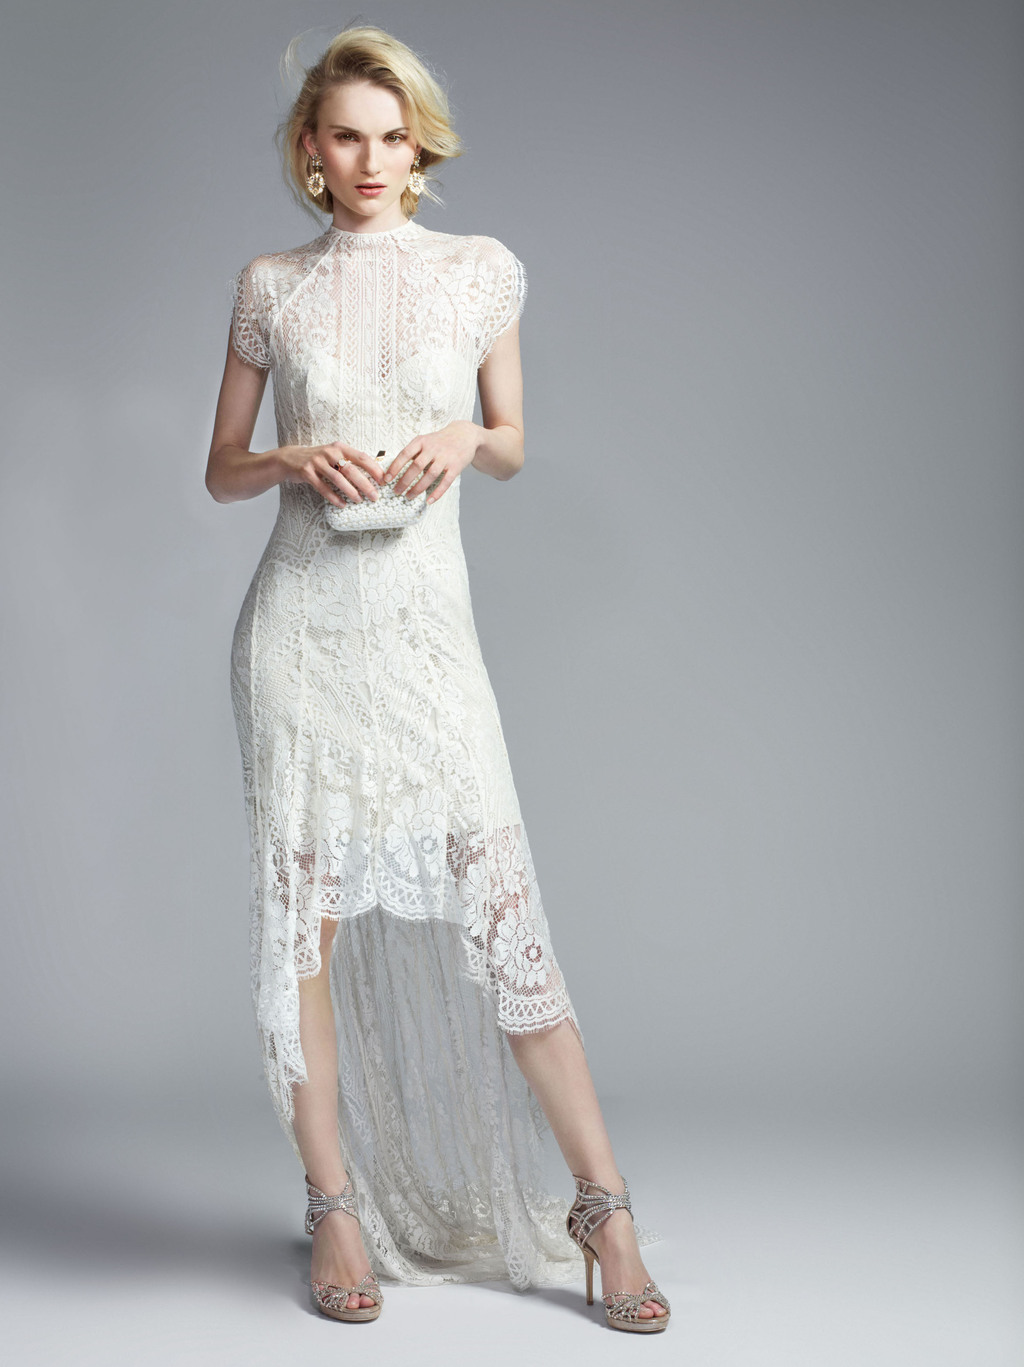 Lover-lace-wedding-dress-2013-exclusive-bridal-designer-collection-from-net-a-porter.full